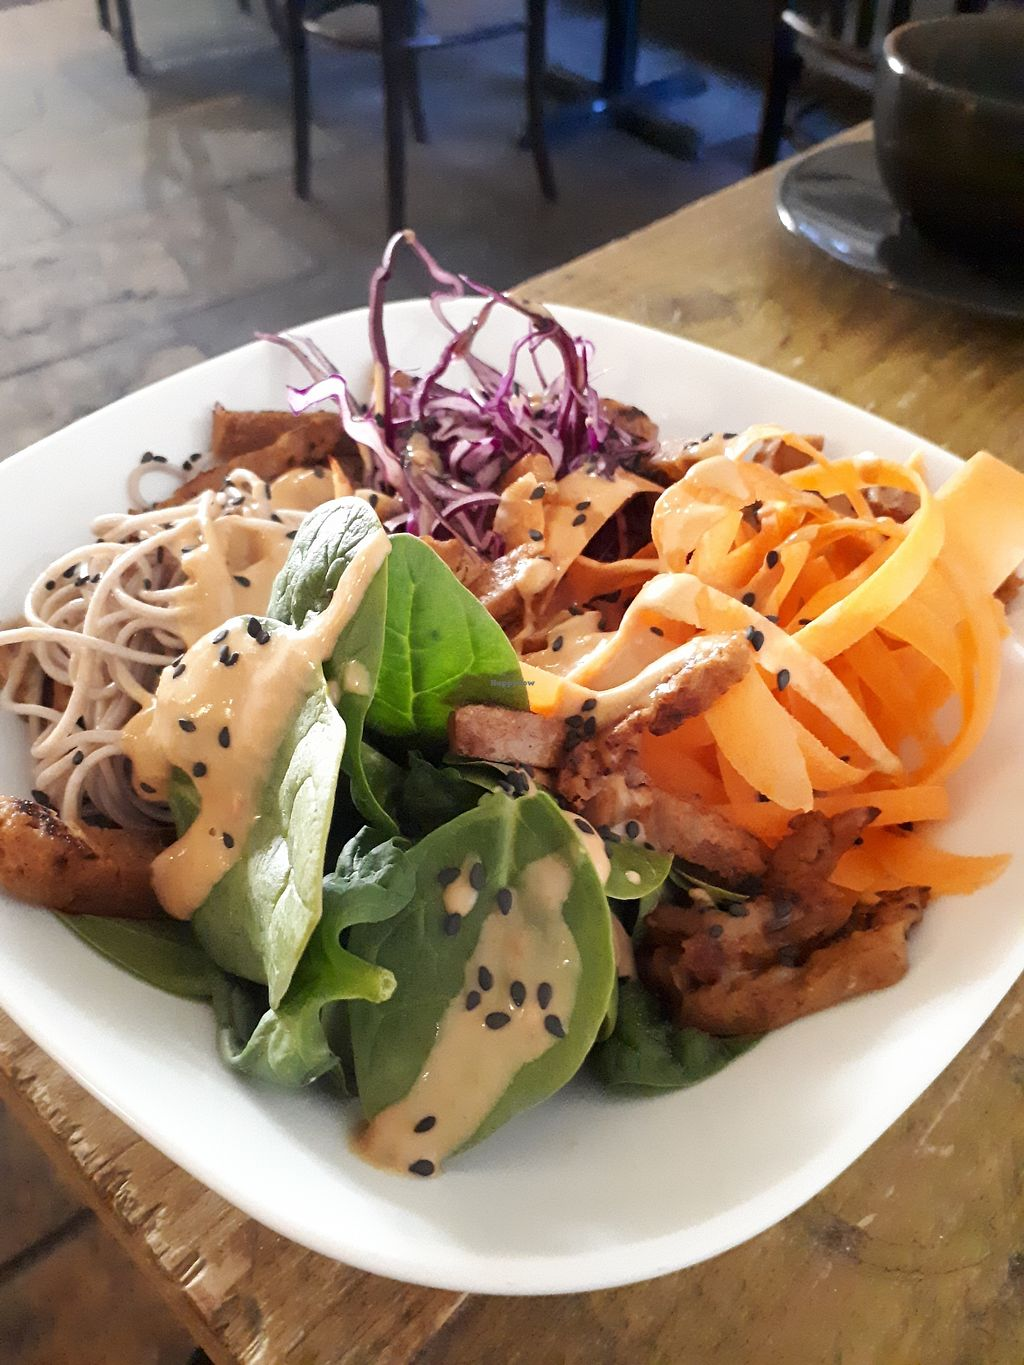 """Photo of Seeds for the Soul  by <a href=""""/members/profile/Huffapuffalo"""">Huffapuffalo</a> <br/>Seitan salad bowl <br/> March 9, 2018  - <a href='/contact/abuse/image/108790/368613'>Report</a>"""